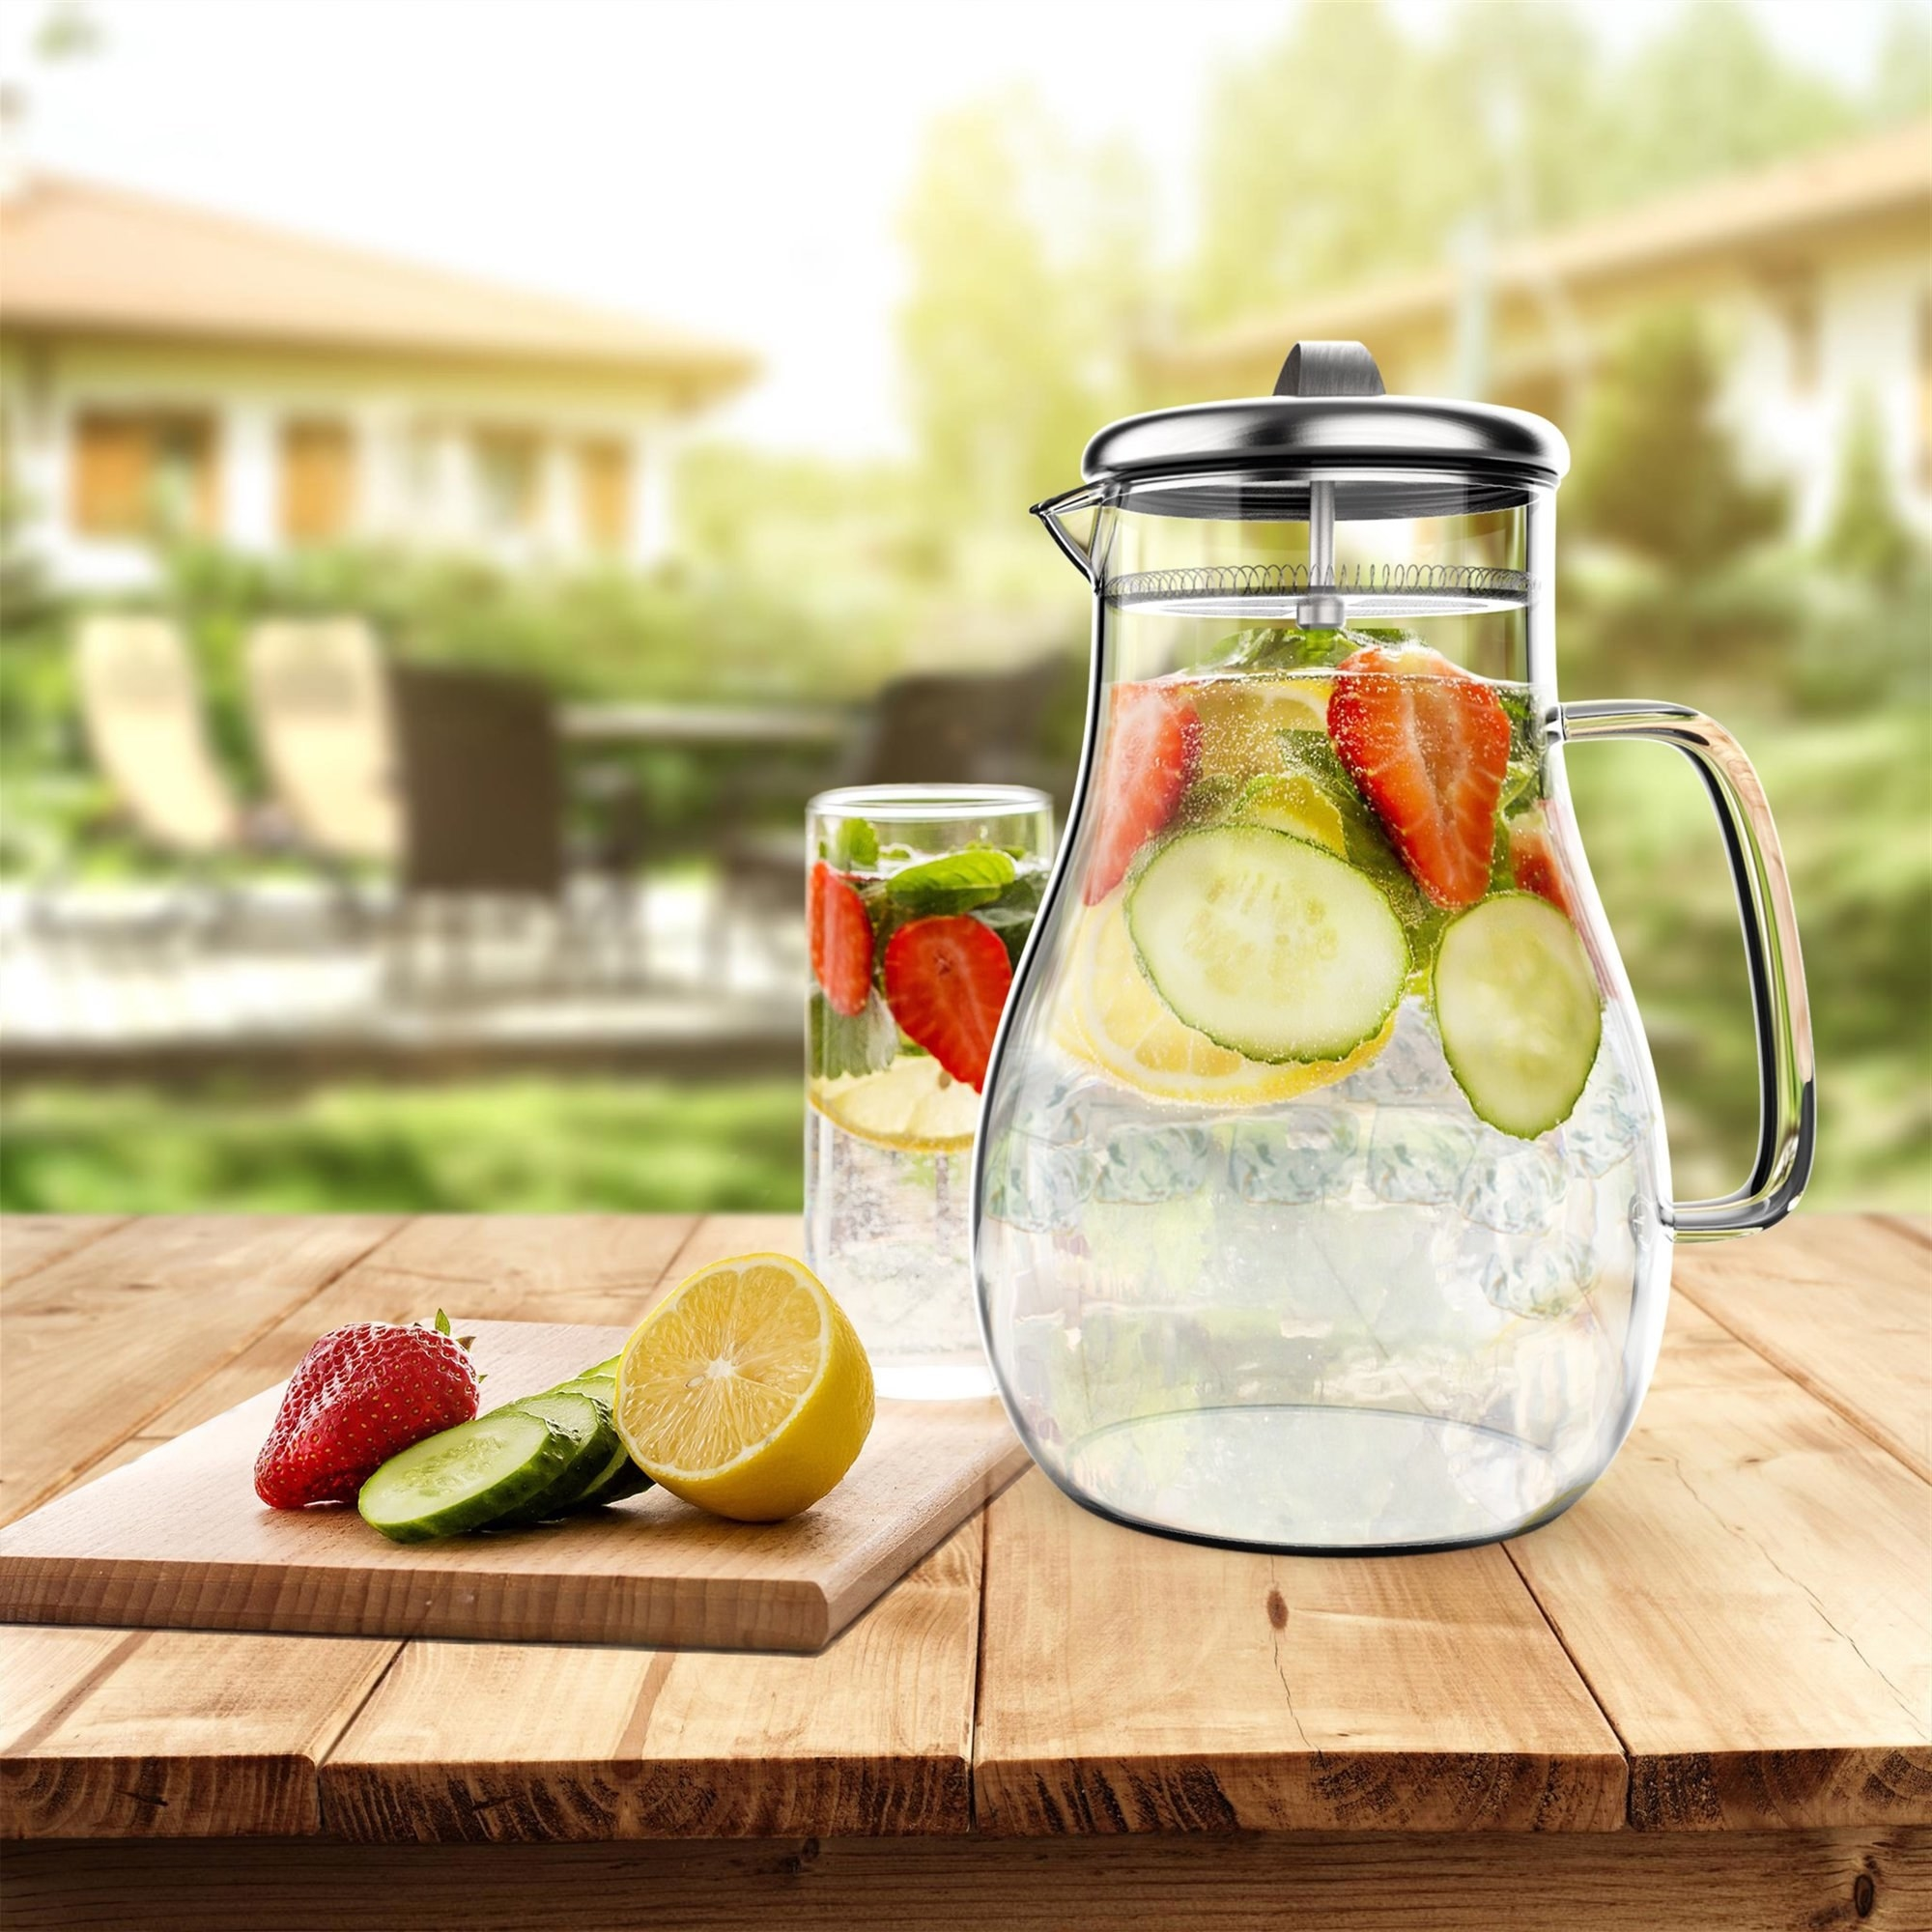 the glass pitcher